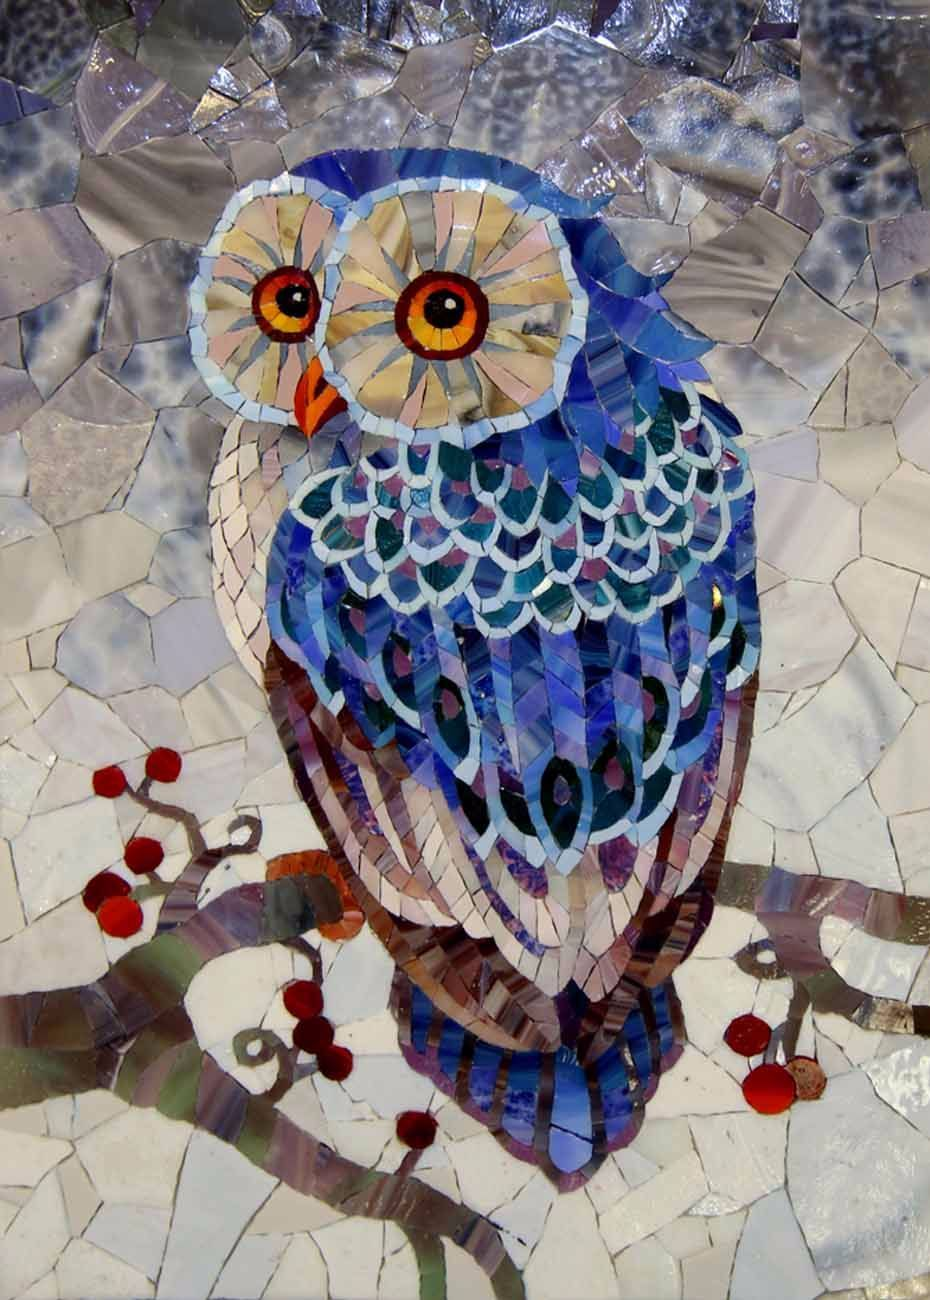 Pinterest Mosaique Pin By Kim Wagner On Mosaics Pinterest Mosaique Vitrail And